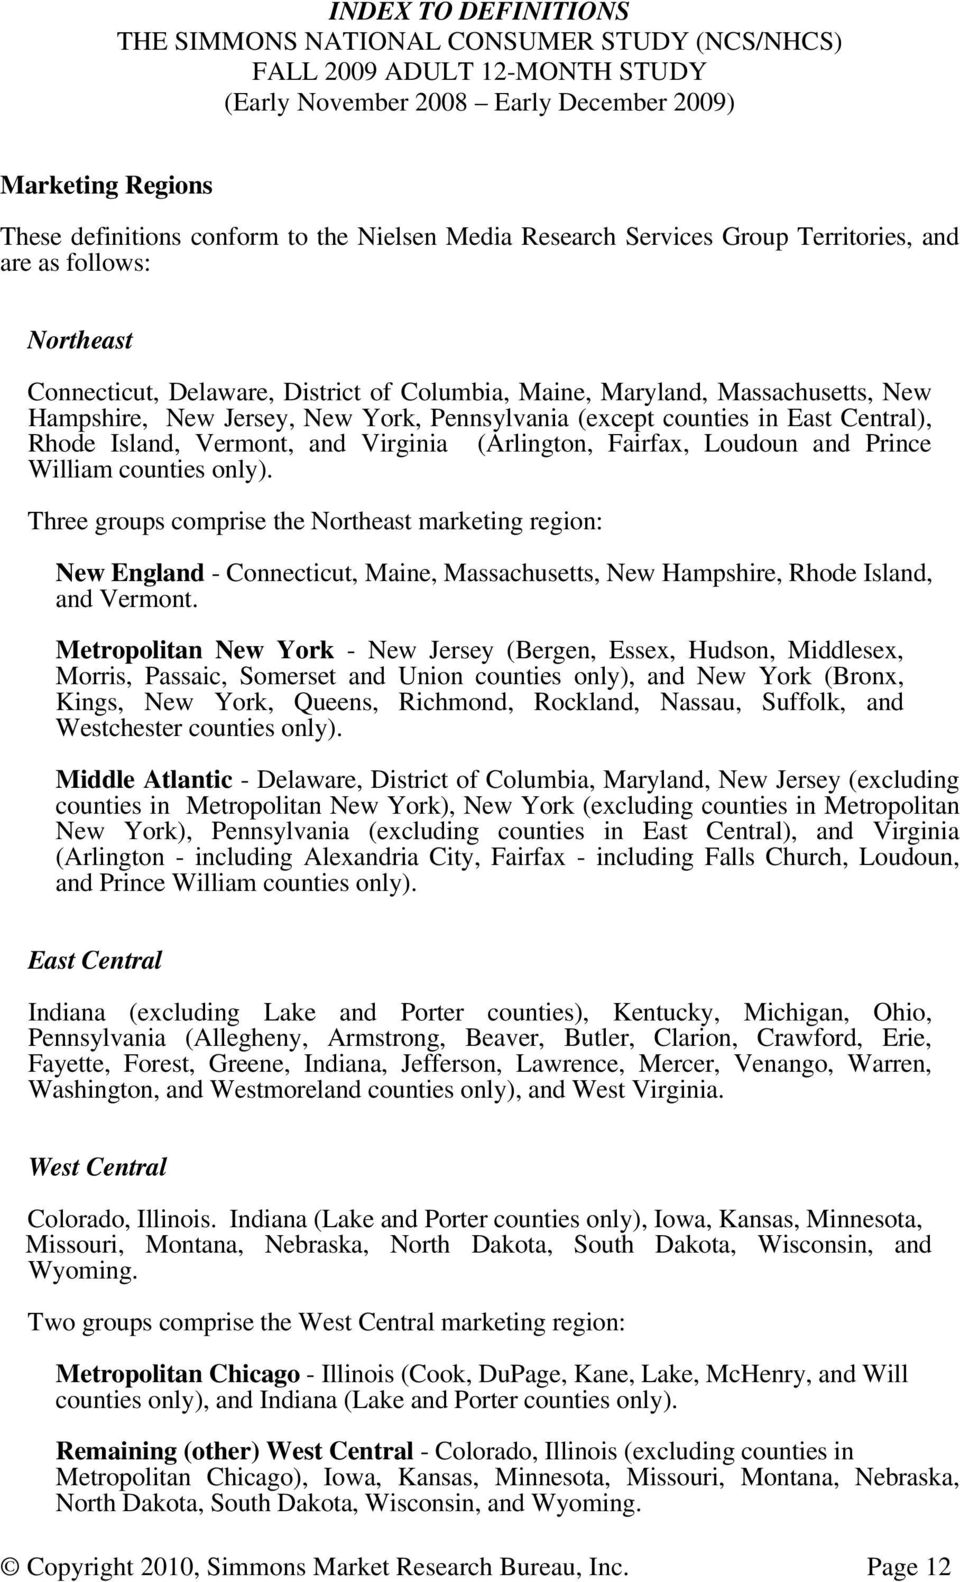 Three groups comprise the Northeast marketing region: New England - Connecticut, Maine, Massachusetts, New Hampshire, Rhode Island, and Vermont.